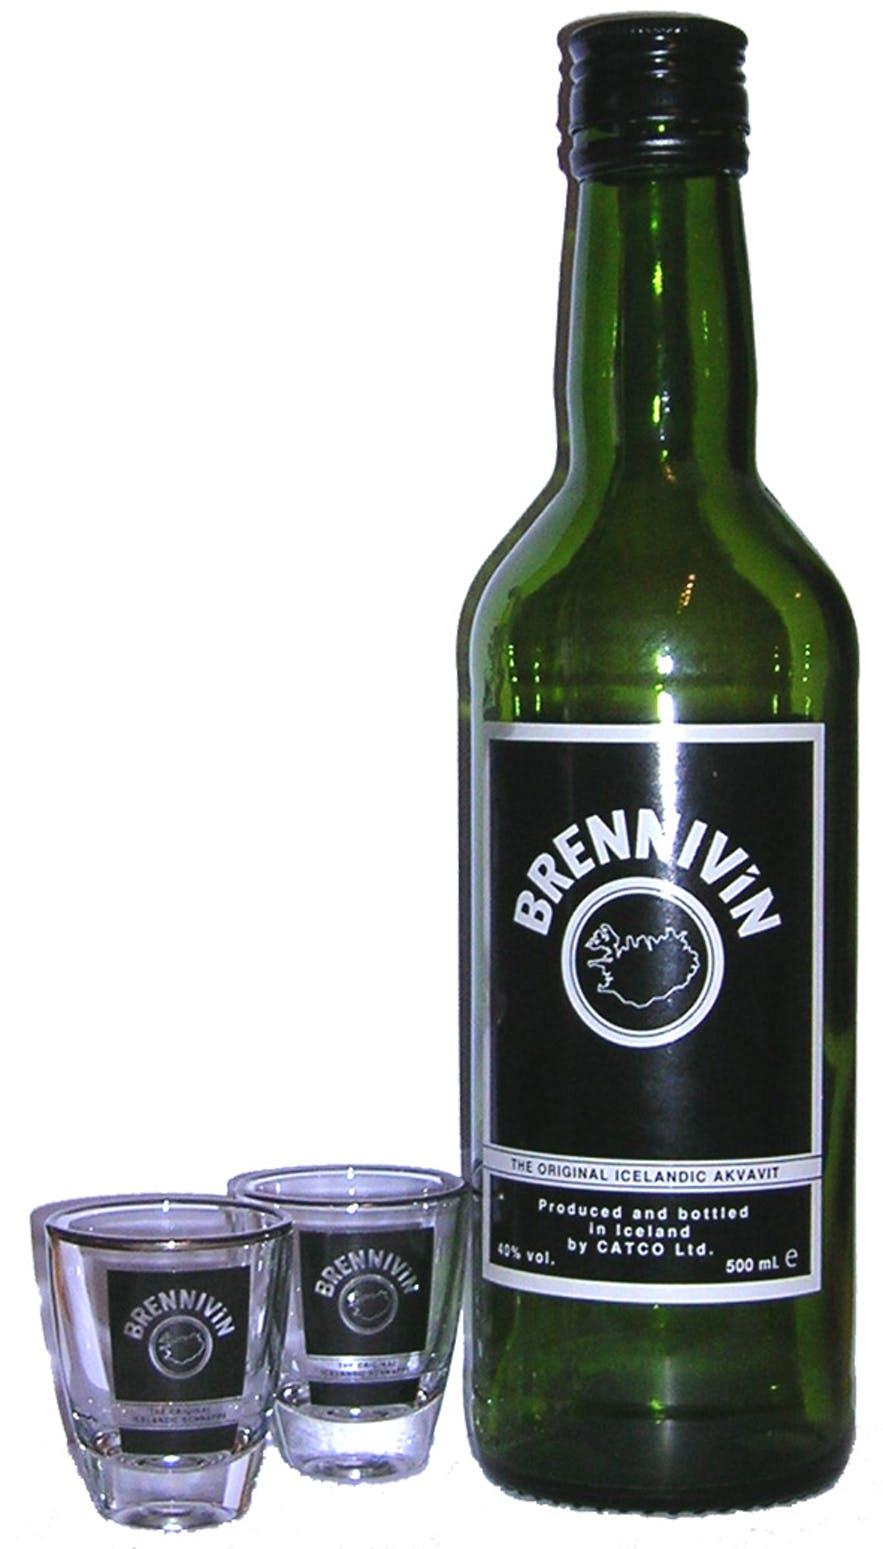 Brennivin is the main spirit of Iceland.